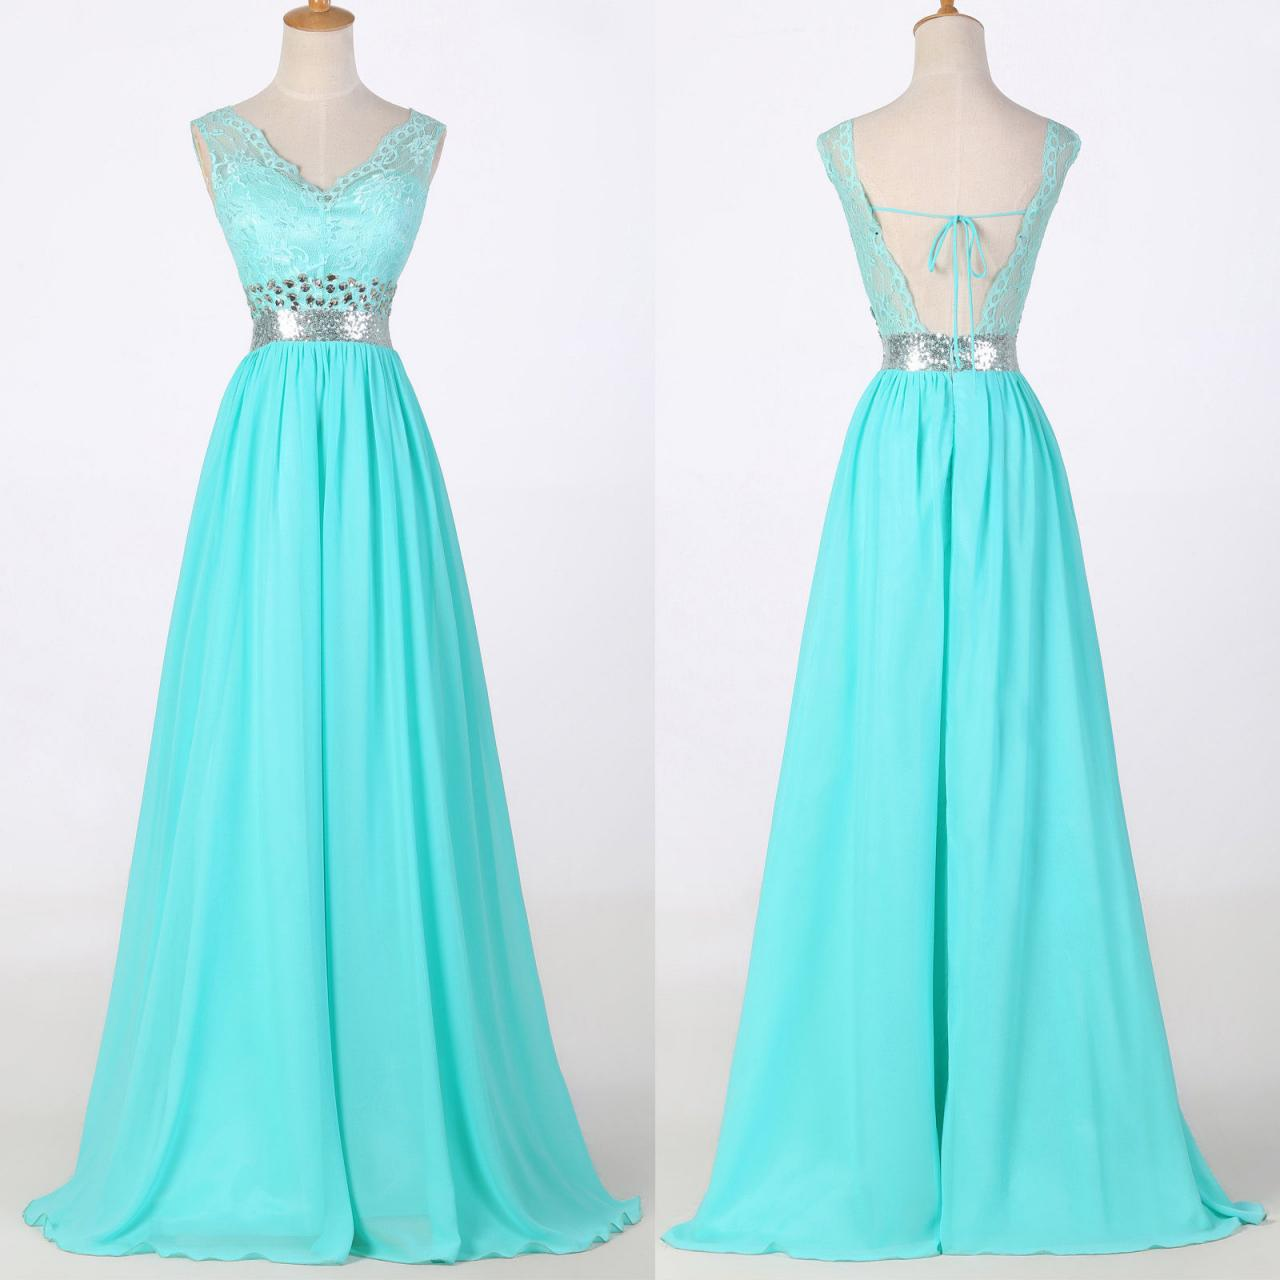 Elegant Plus Size Long Prom Dresses,V-Neck Evening Gowns,Backless ...